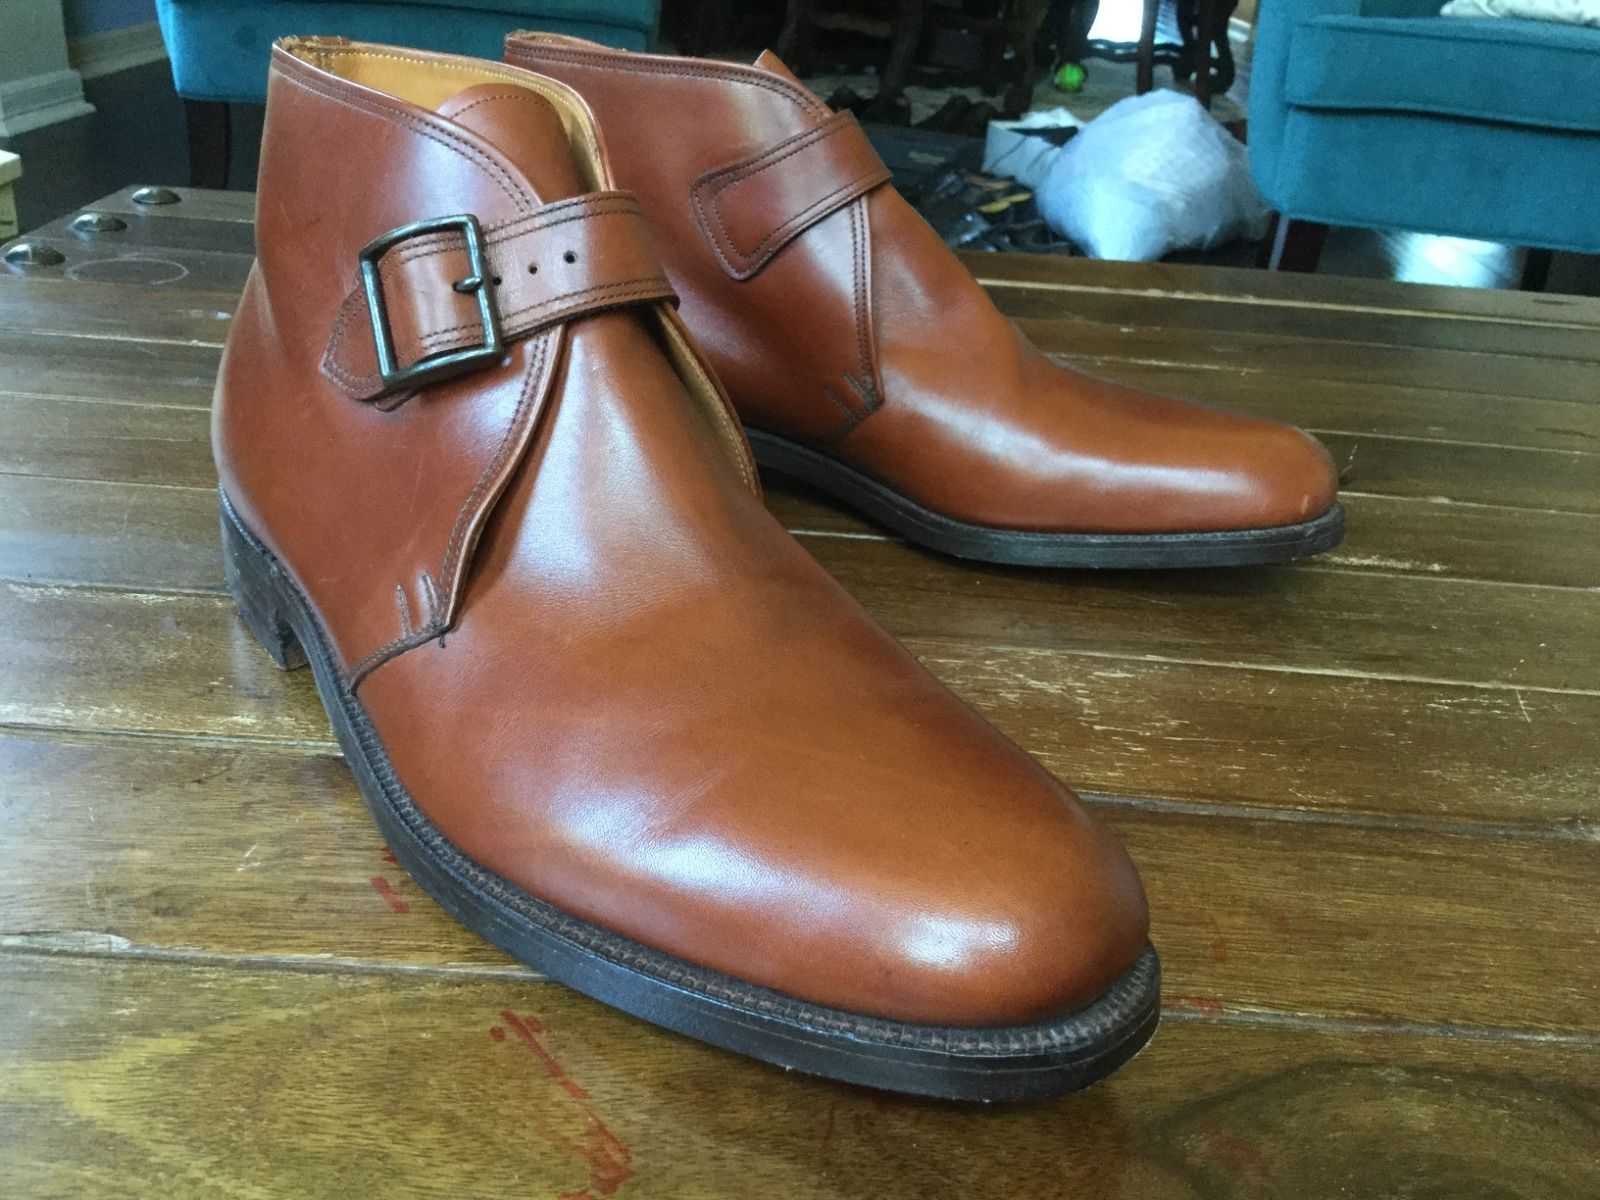 Nettleton Traditionals boots